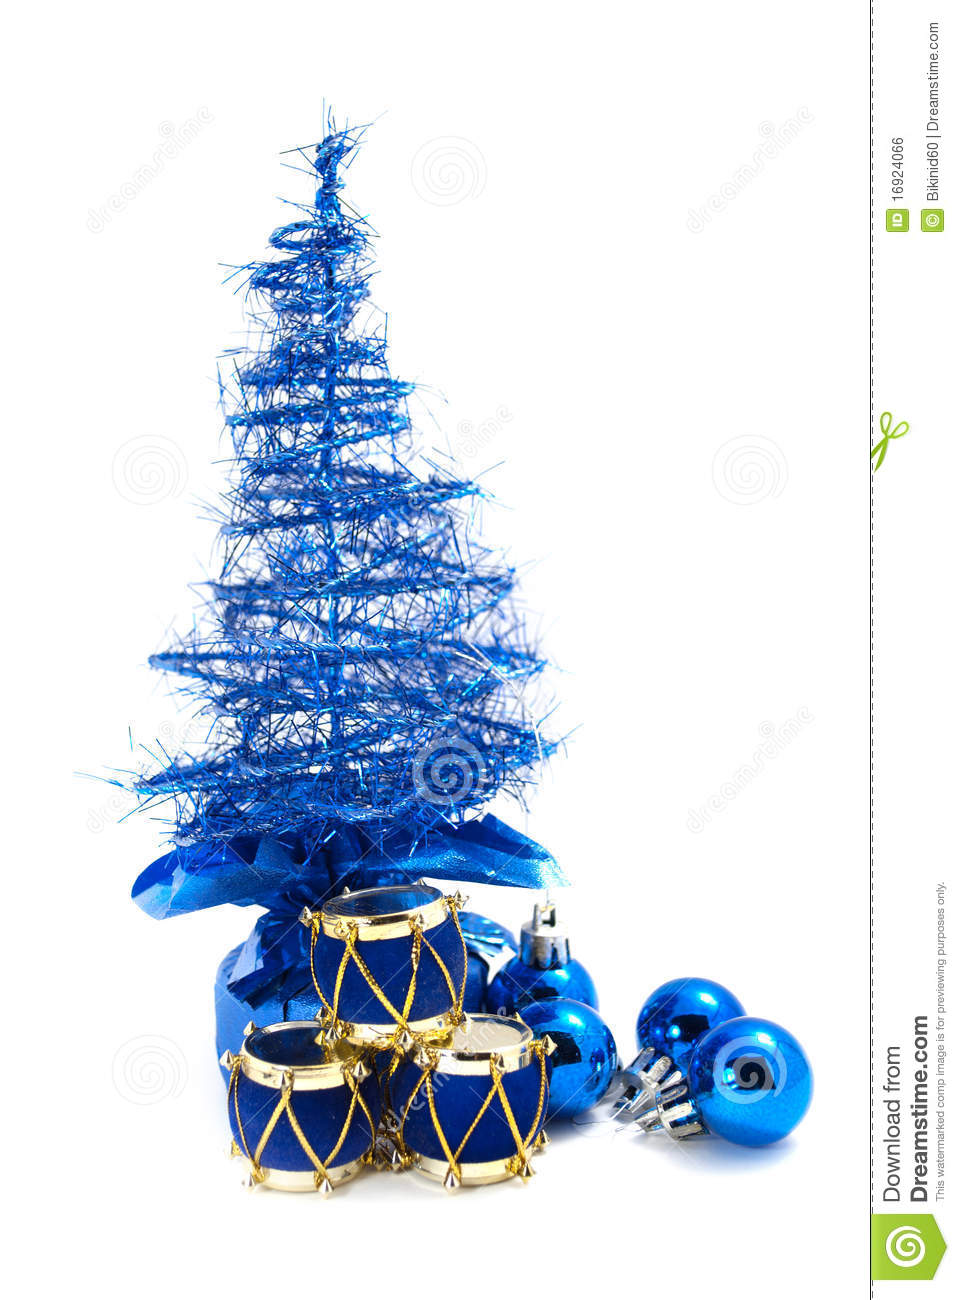 Christmas tree and toys royalty free stock image image for Blue gold and white christmas tree